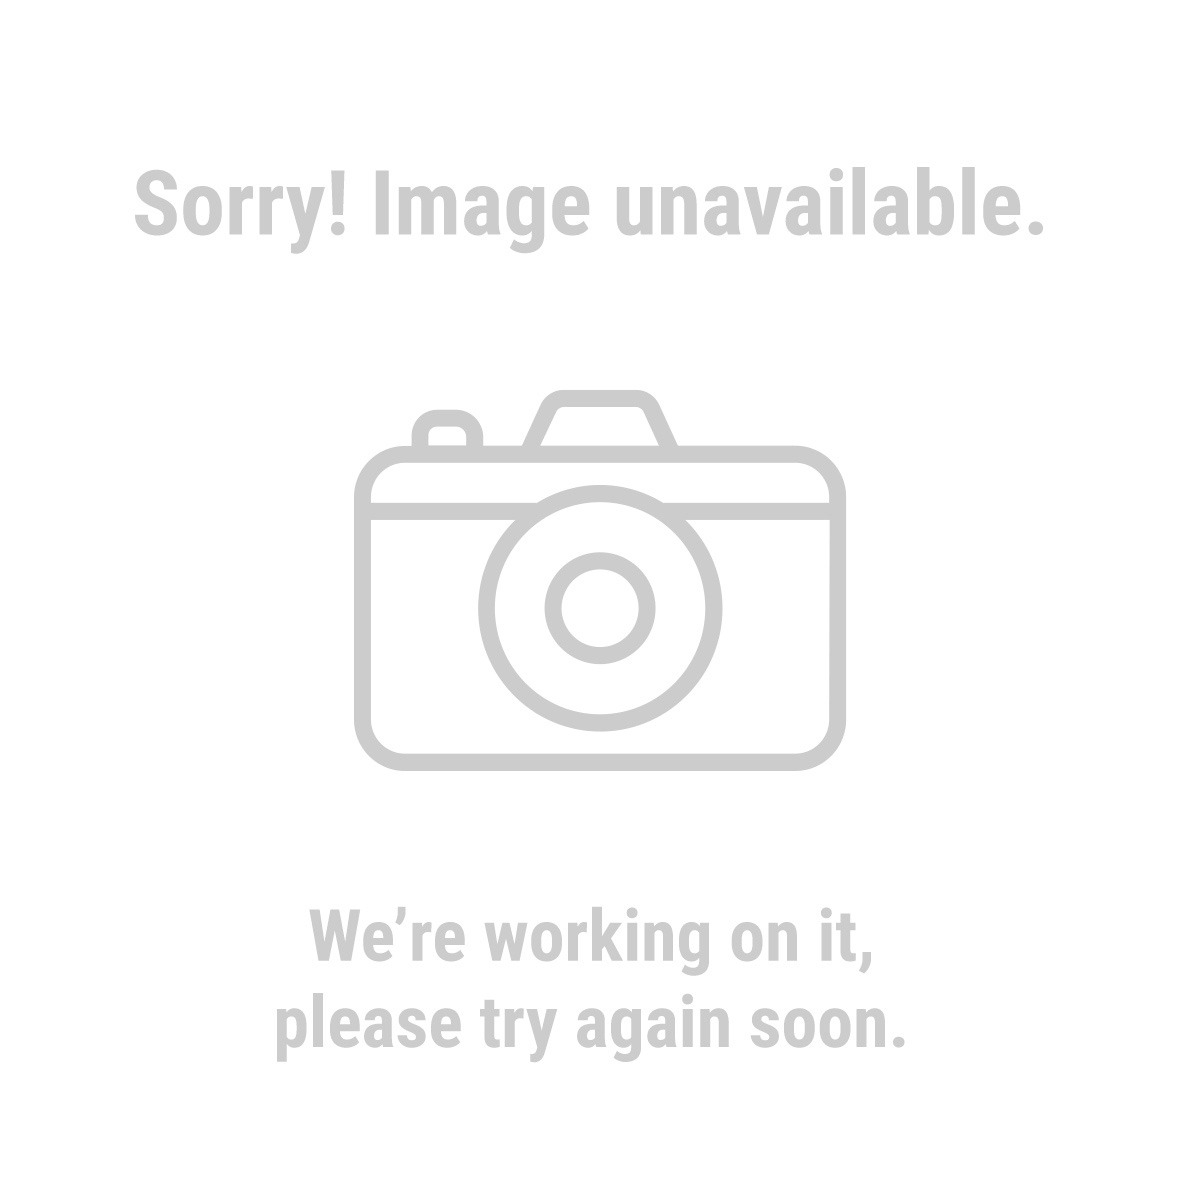 Storehouse 67686 520 Piece Terminal Set